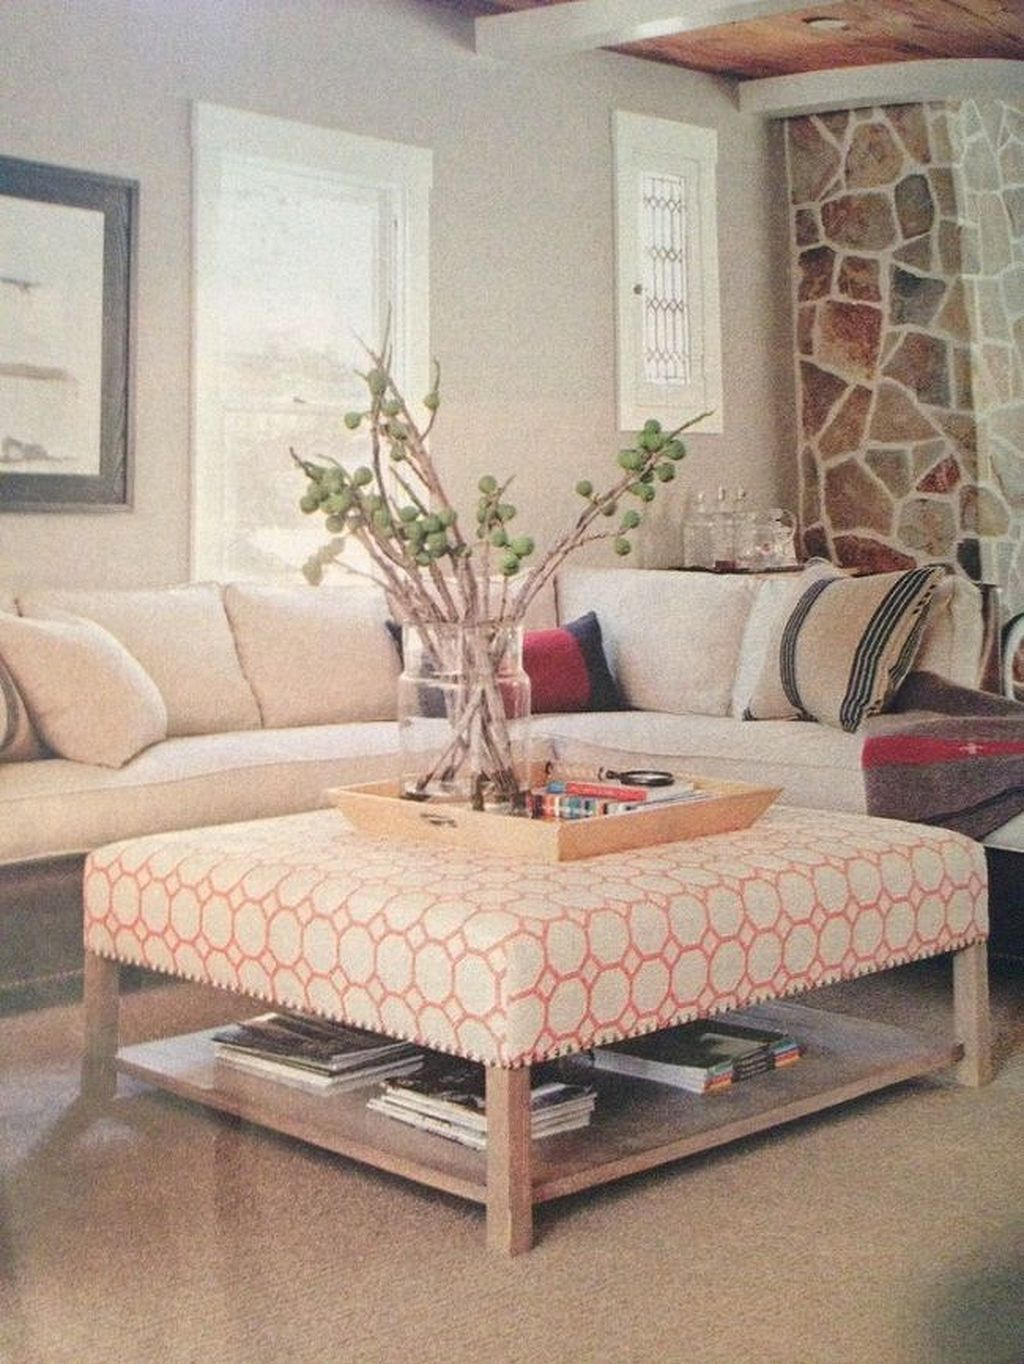 40 Awesome Coffee Tables Ideas Upholstered Coffee Tables Fabric